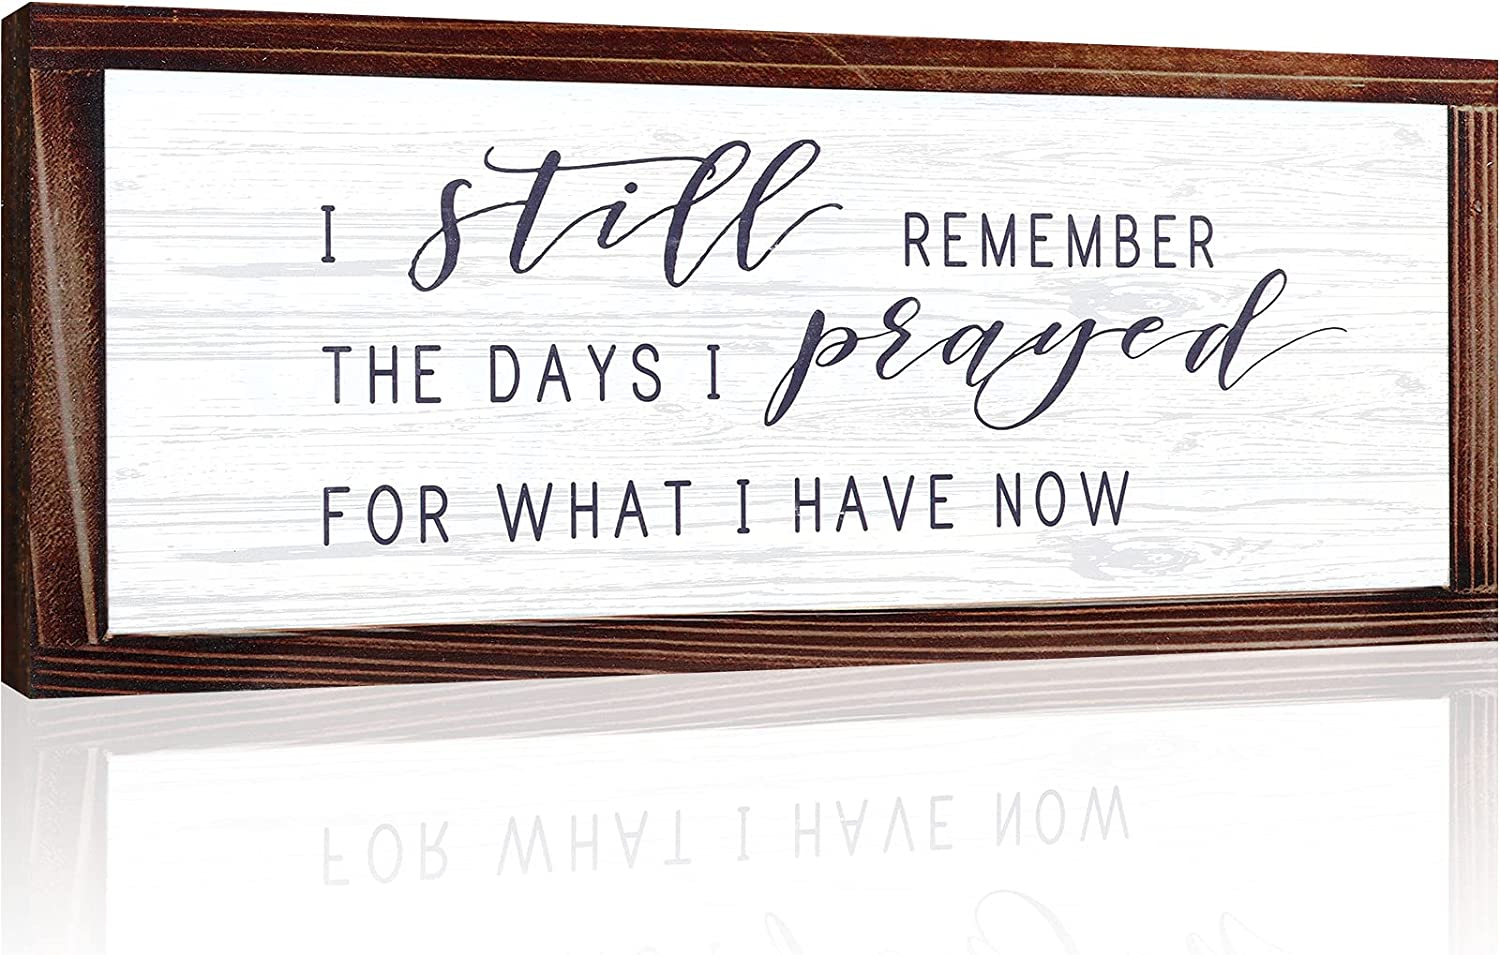 I Still Remember The Days I Prayed for What I Have Now Rustic Wood Wall Sign Hanging Wood Sign Retro Vintage Christian Home Decor Wooden Farmhouse Plaque for Garden Home Farmhouse